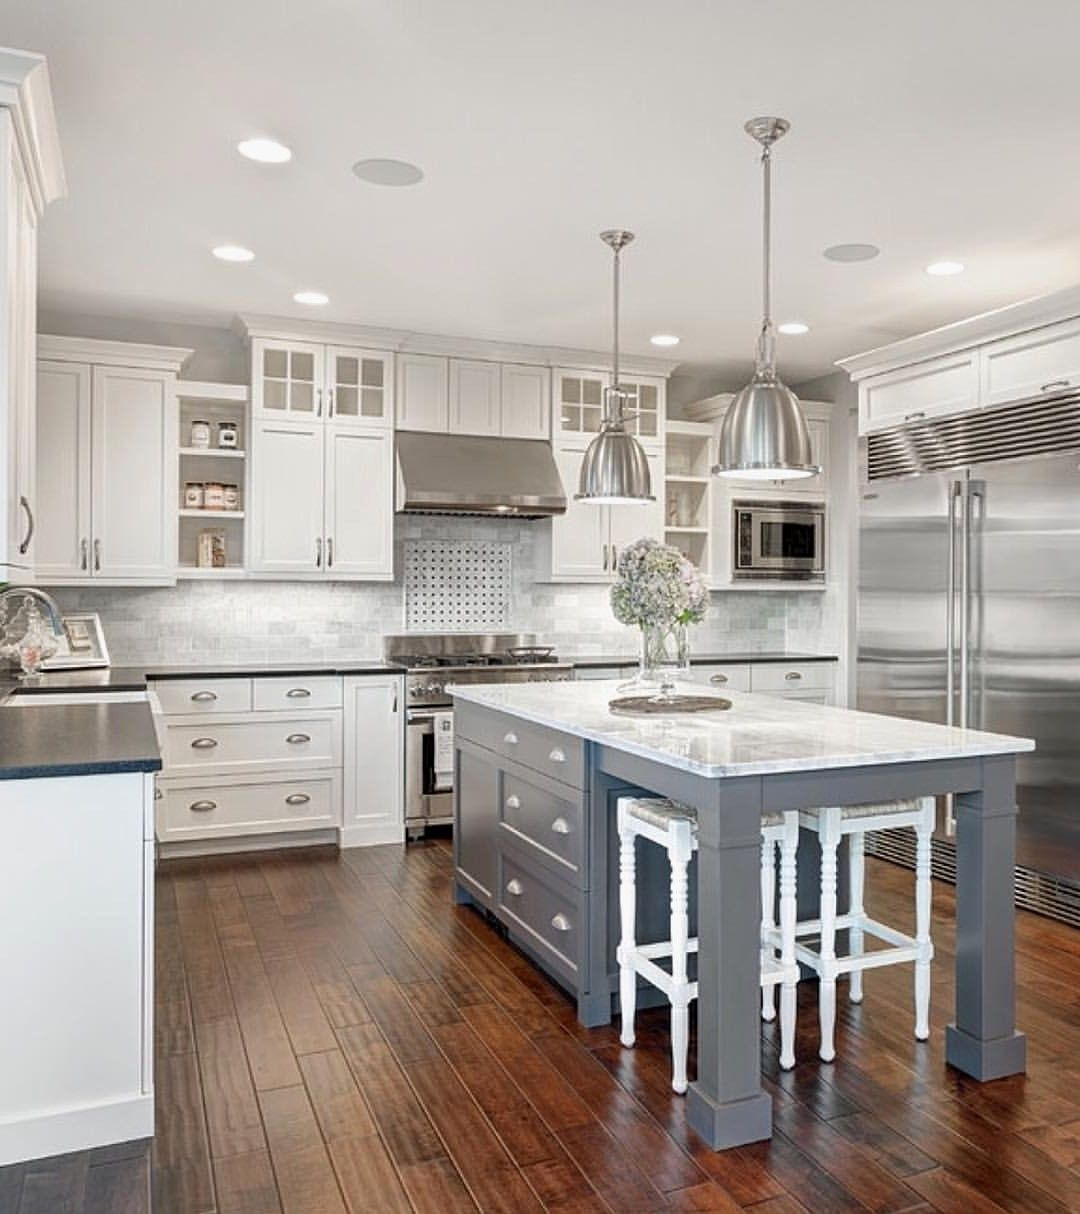 White Kitchen Cabinets With Different Color Island Awesome Cabinet Kitchen Cabinets Van Grey Kitchen Island Contrasting Kitchen Cabinets Gray And White Kitchen